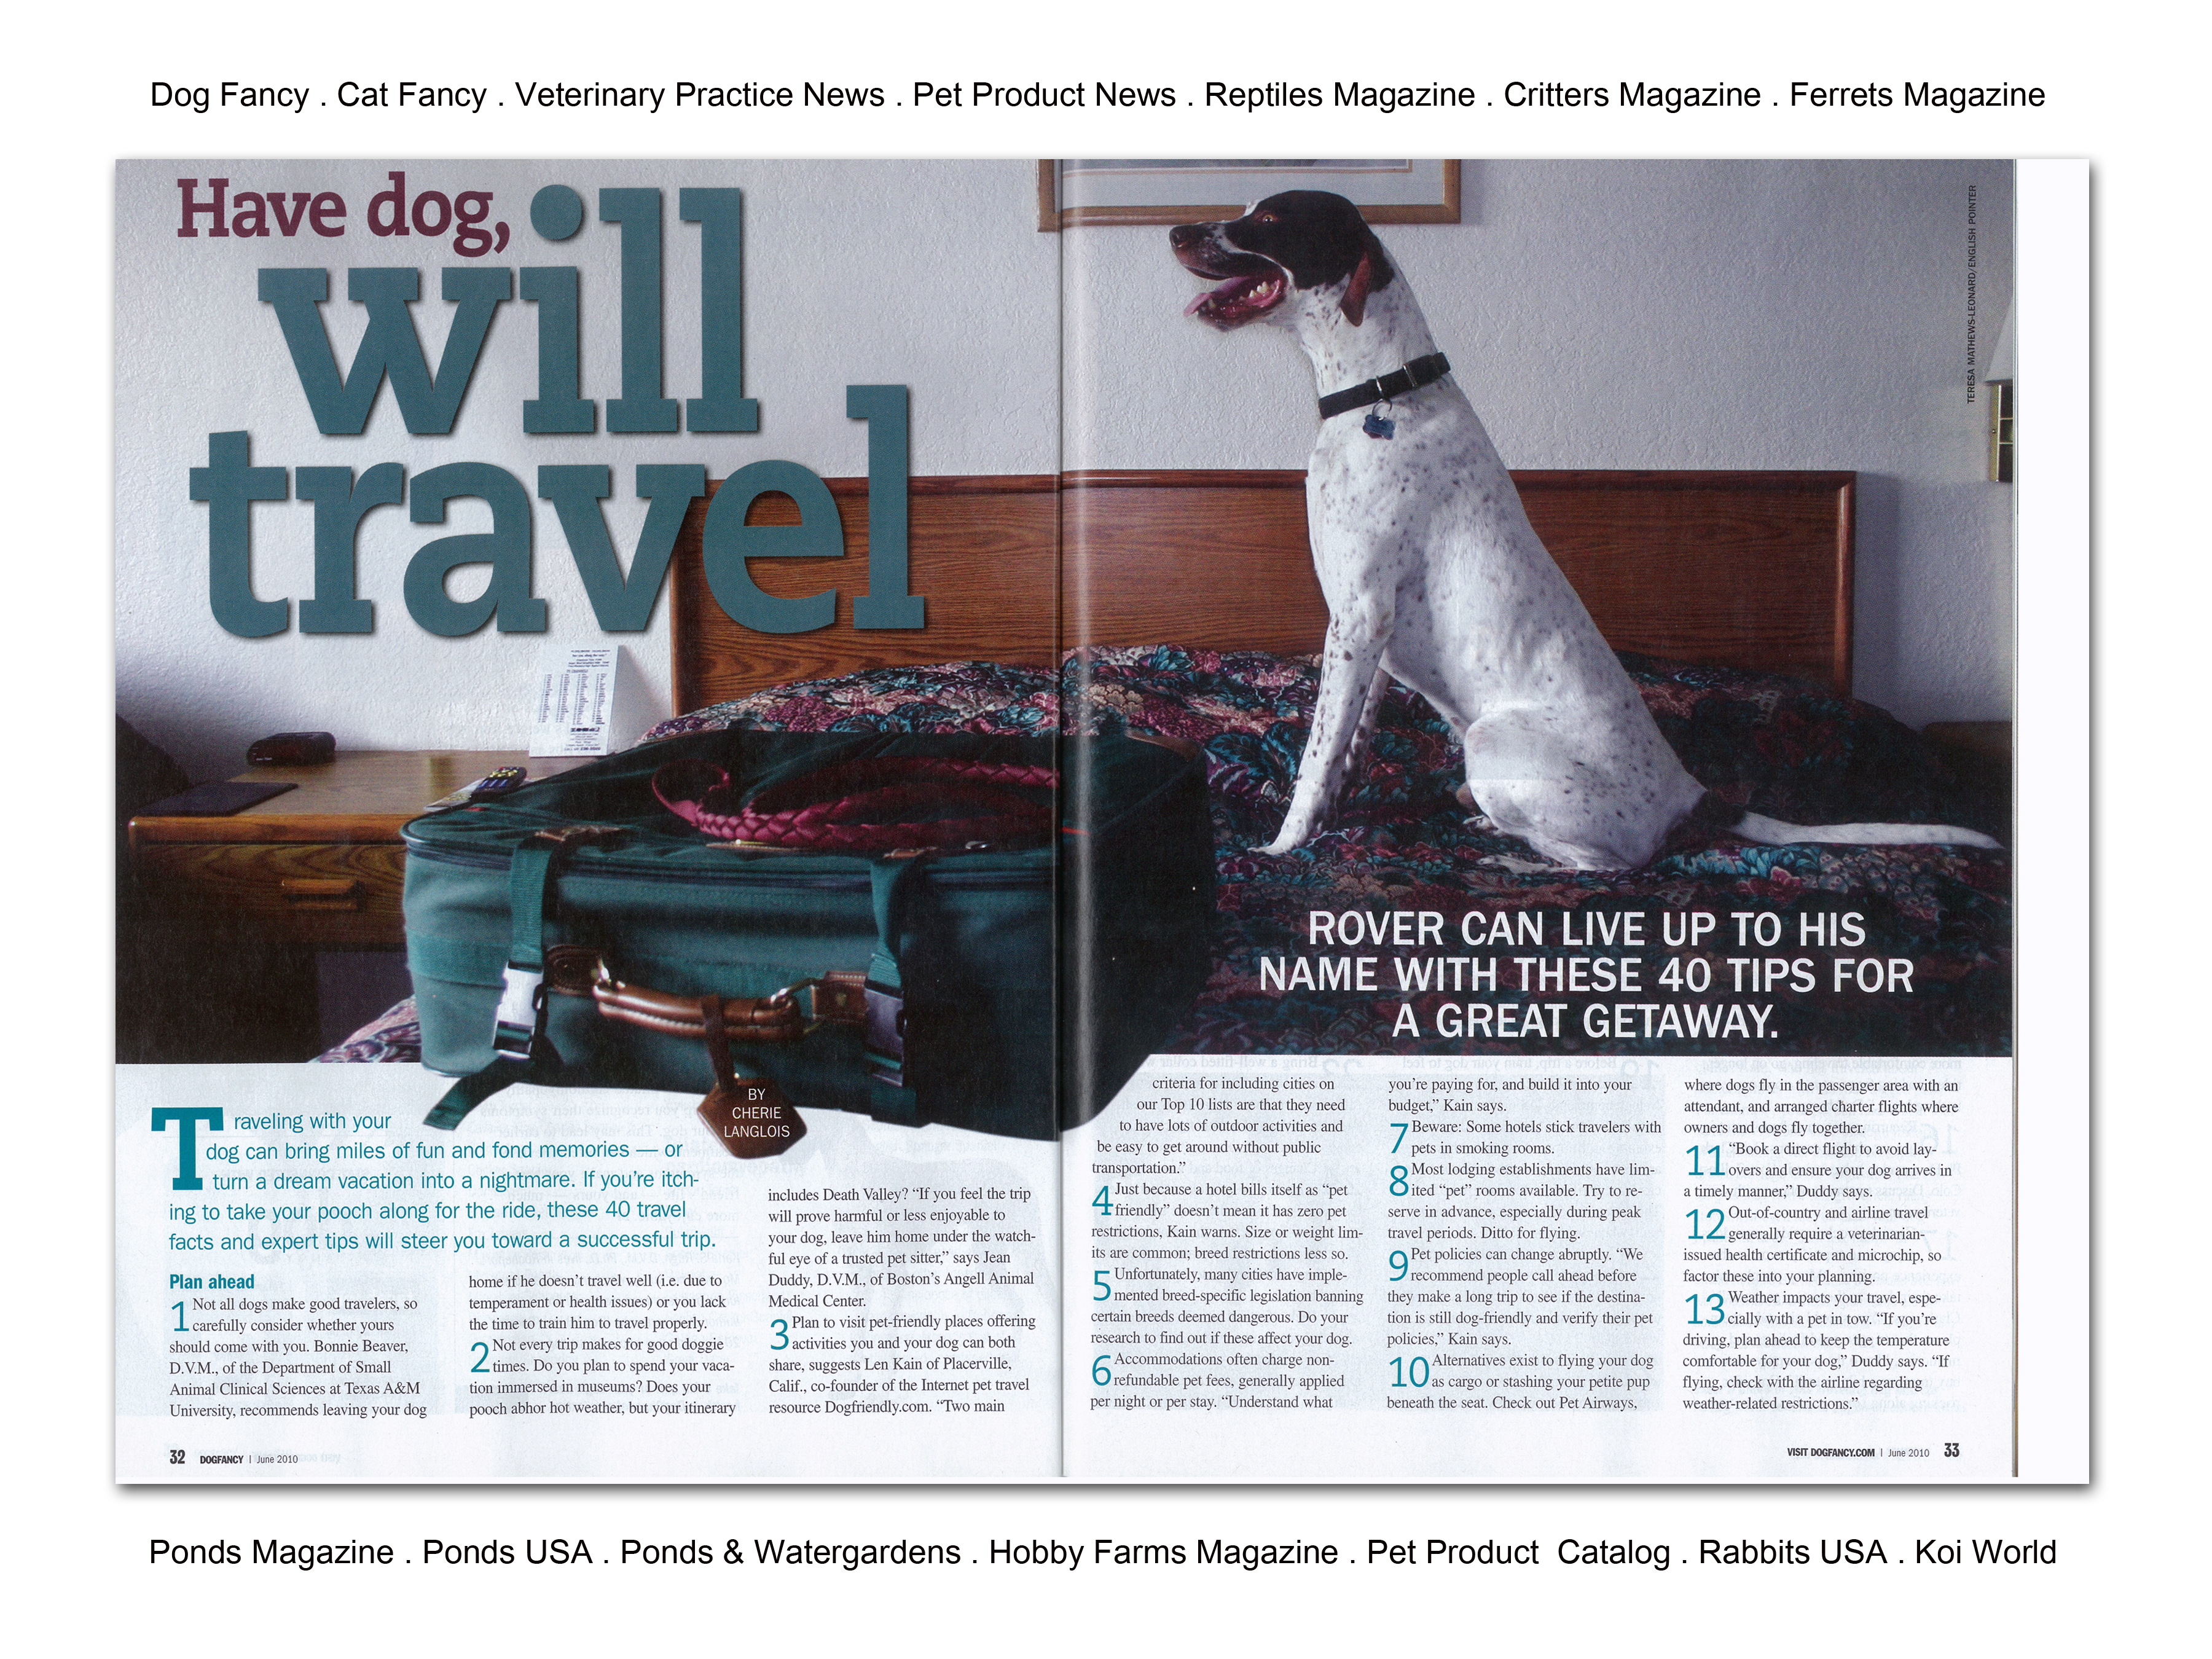 Dog Fancy 2-page spread